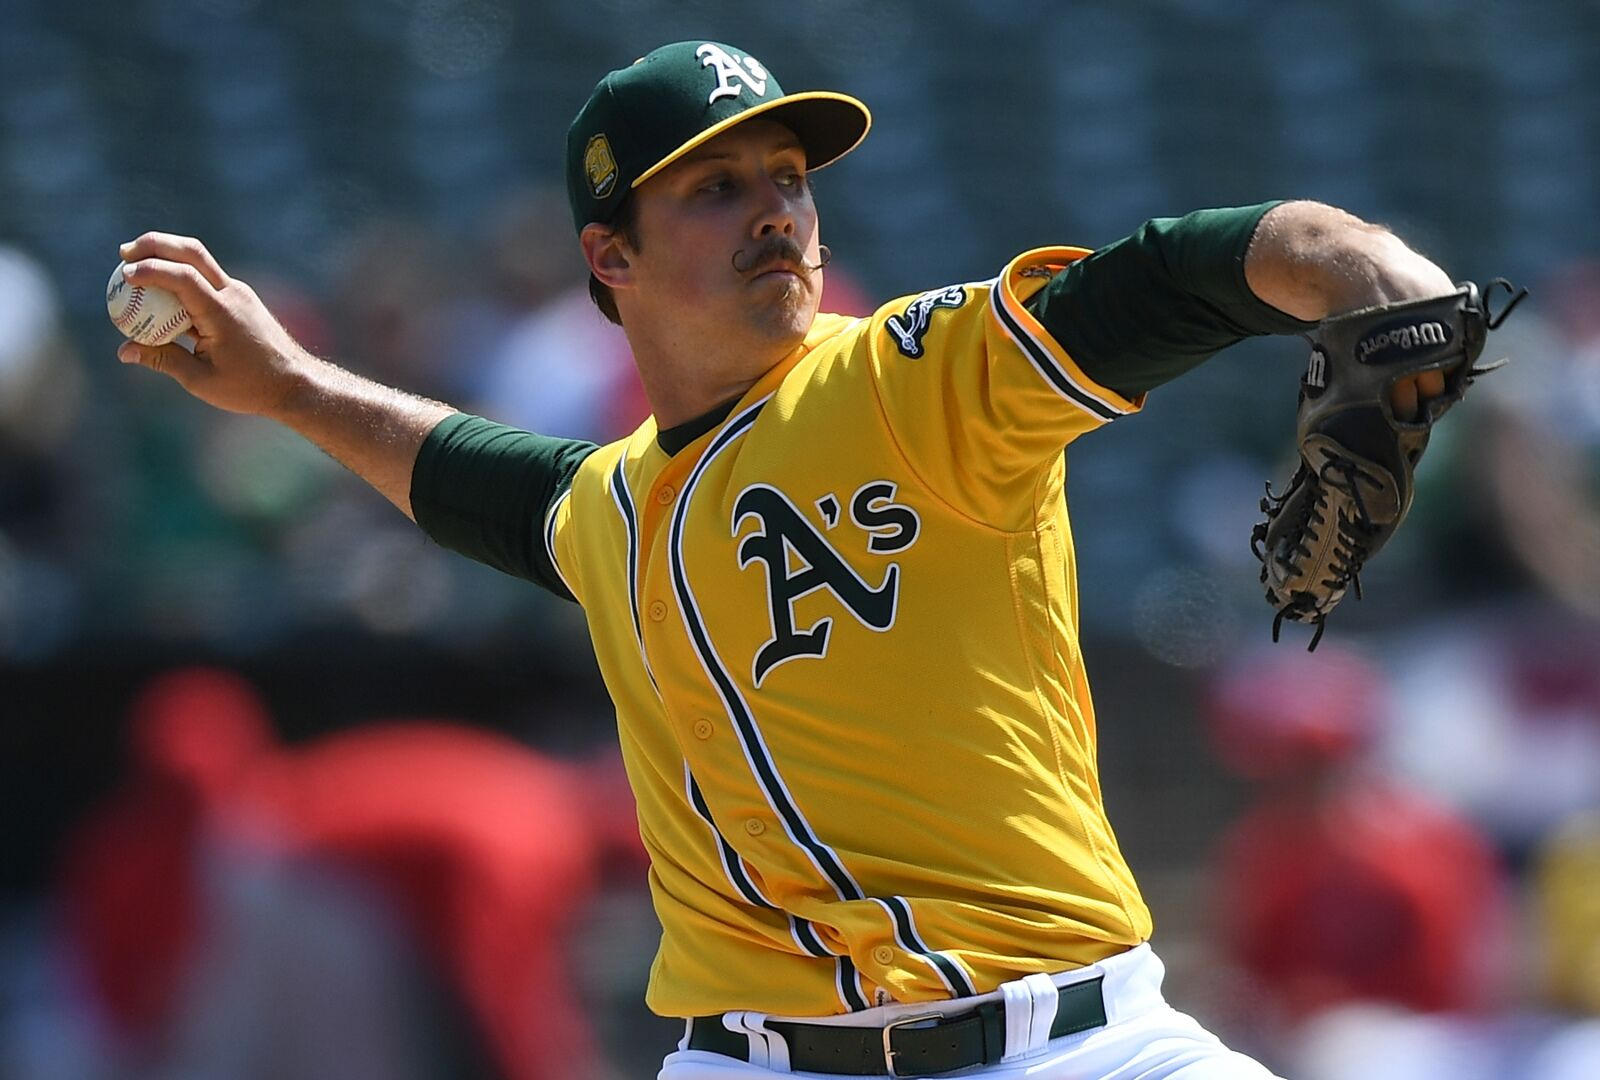 Oakland Athletics' offense hoping to bounce back Wednesday vs. Dodgers